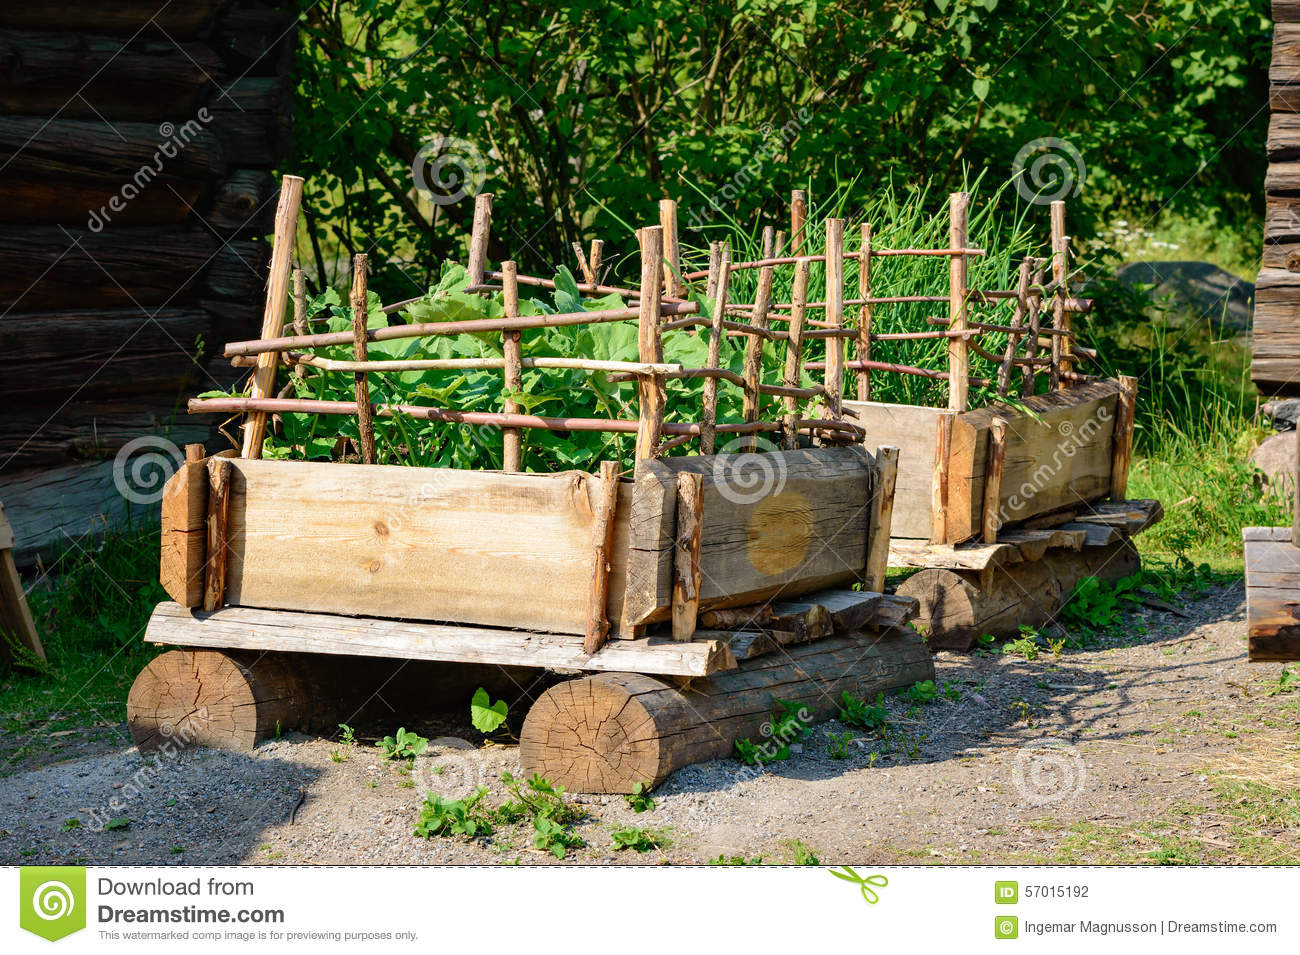 Jardin de palette photo stock image du foodstuff above for Fabricacion de sillon de jardin en palet